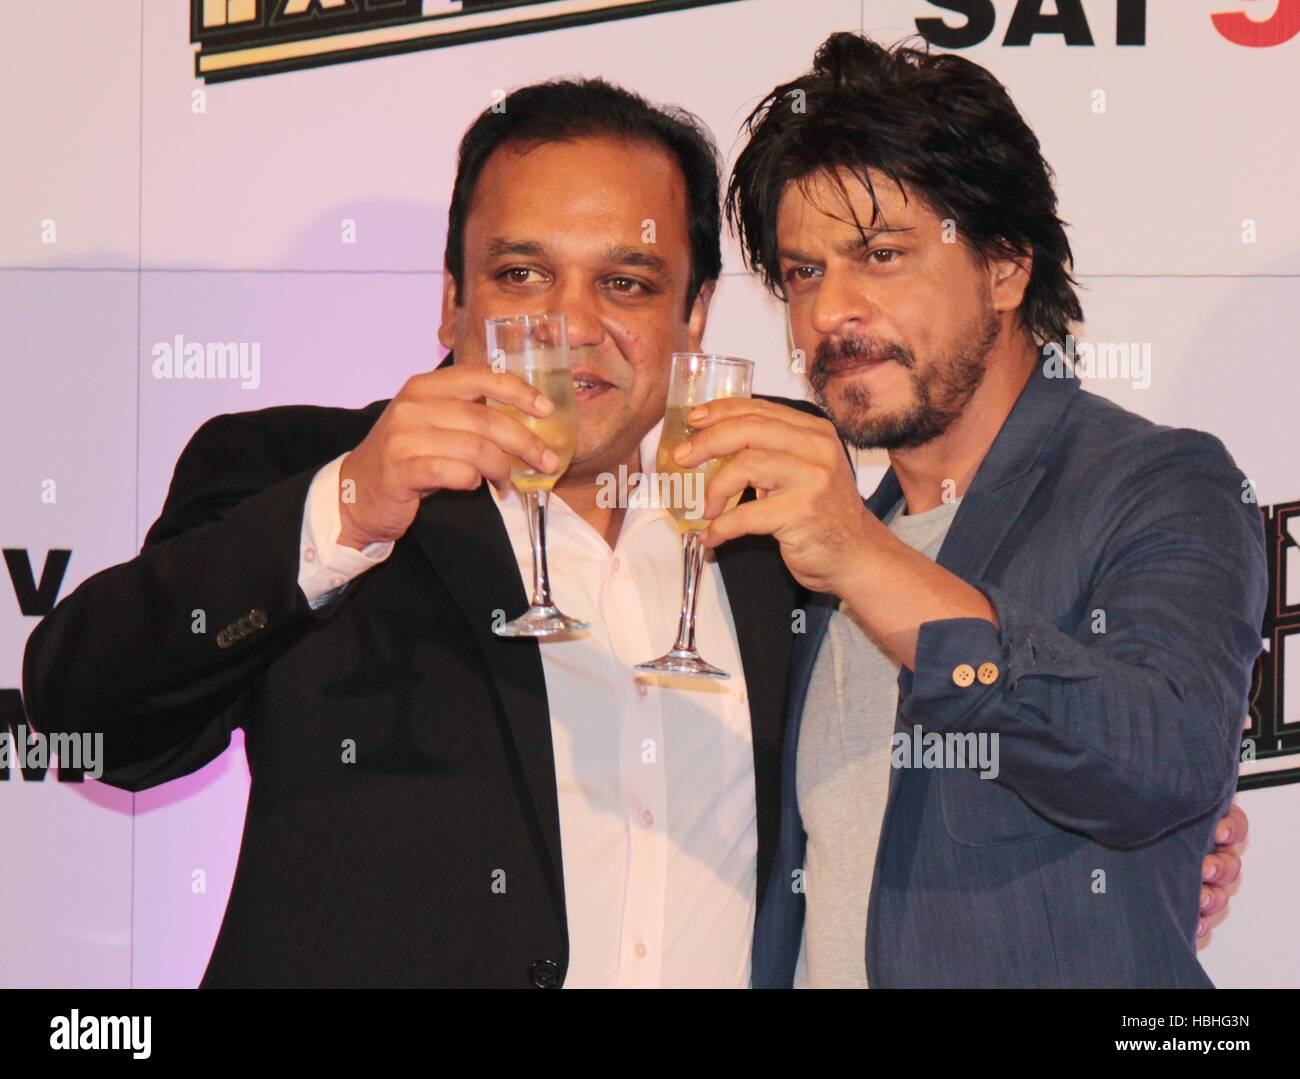 Punit Goenka Entertainment Enterprises Limited Shah Rukh Khan durante parte del éxito de televisión Zee Imagen De Stock